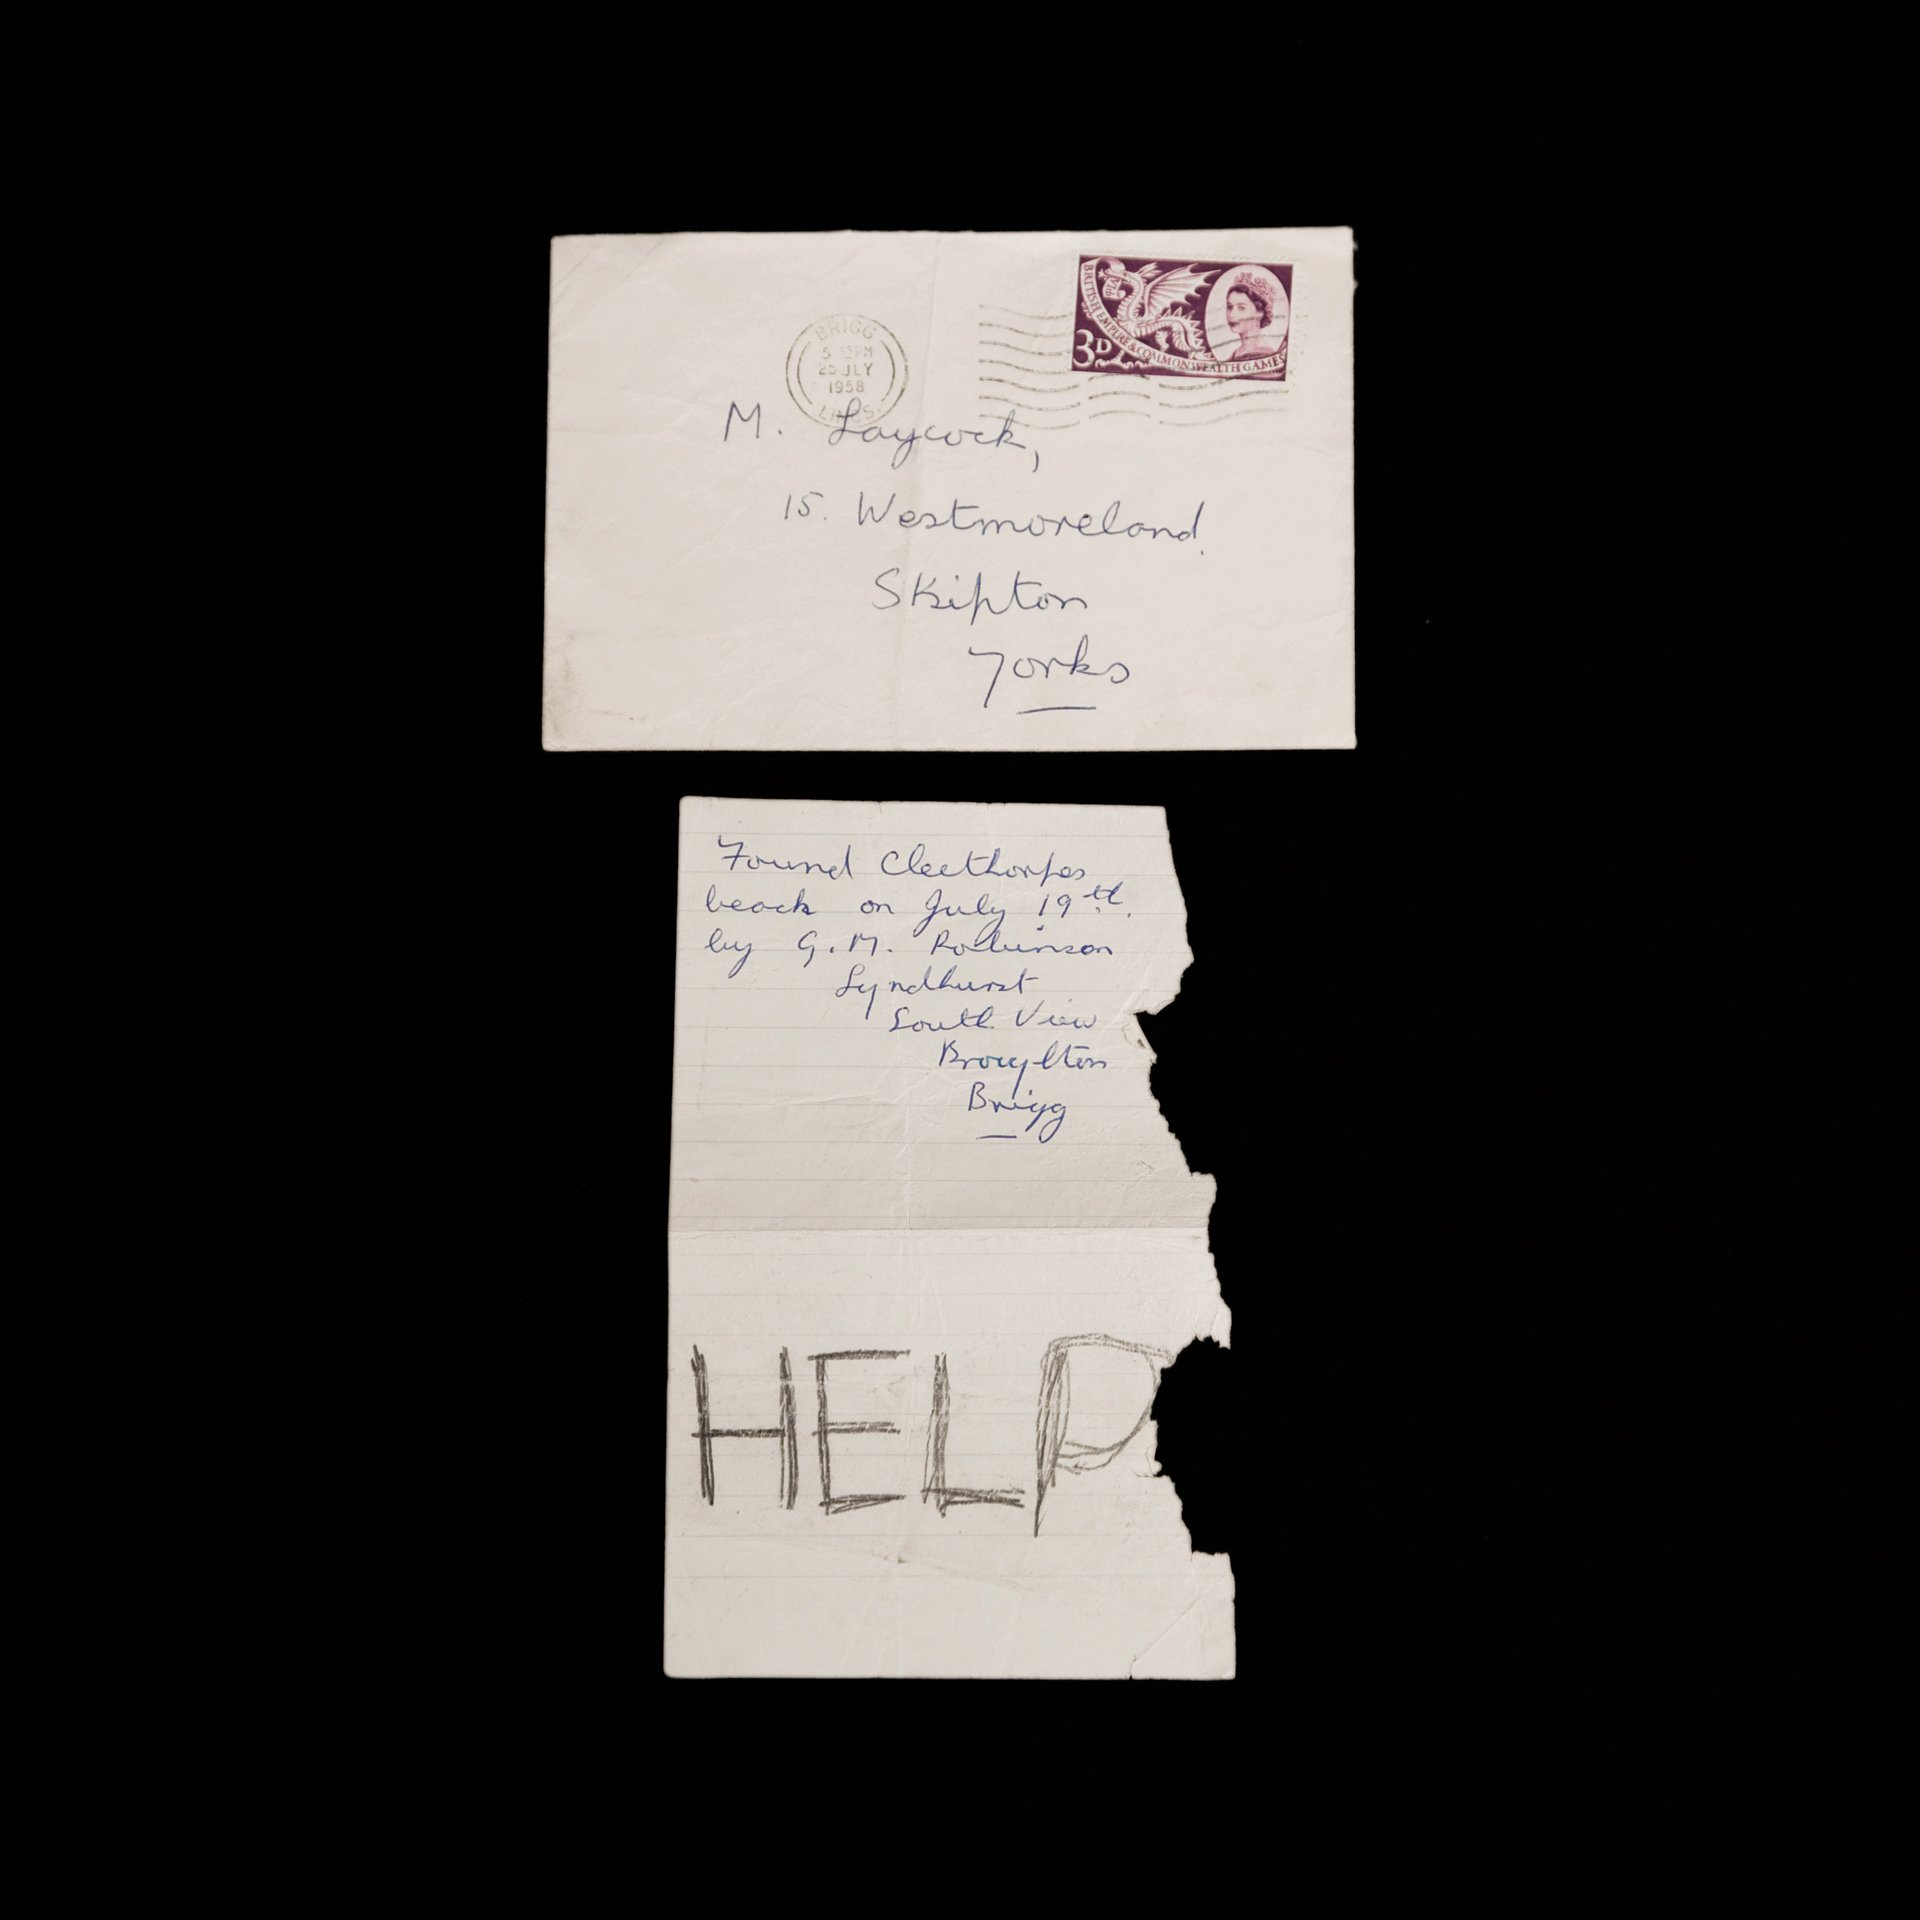 A letter with the word 'HELP' scribed on the page, along with a stamped envelope with an address written on it as part of 'The Fundamental Makings of A Solitary Voyager' archive